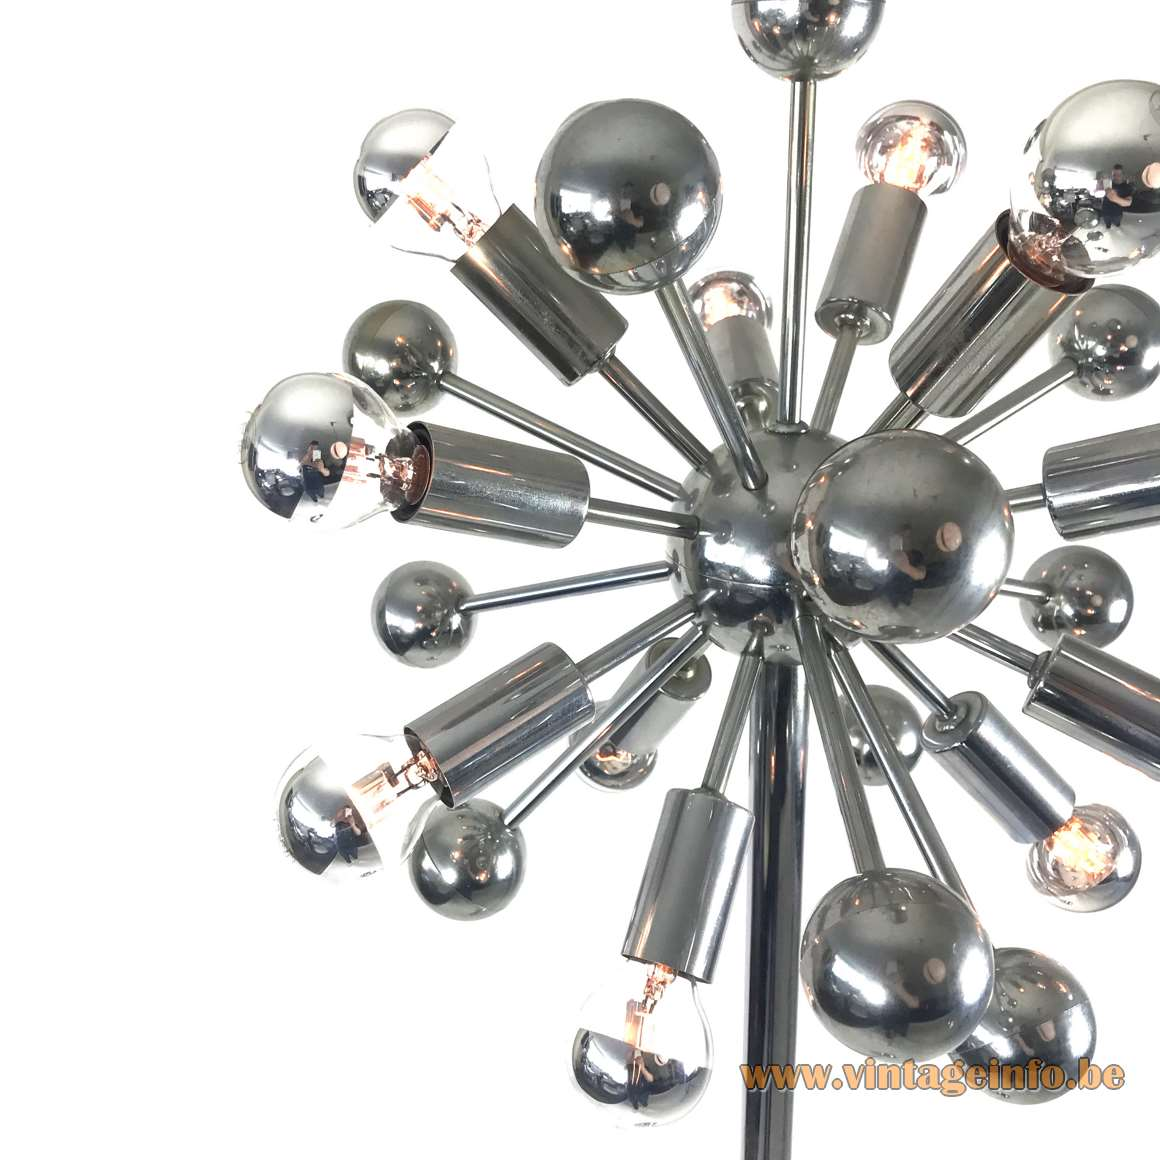 Cosack sputnik floor lamp chrome round base rod lampshade 12 E14 sockets 1960s 1970s Leuchten Germany